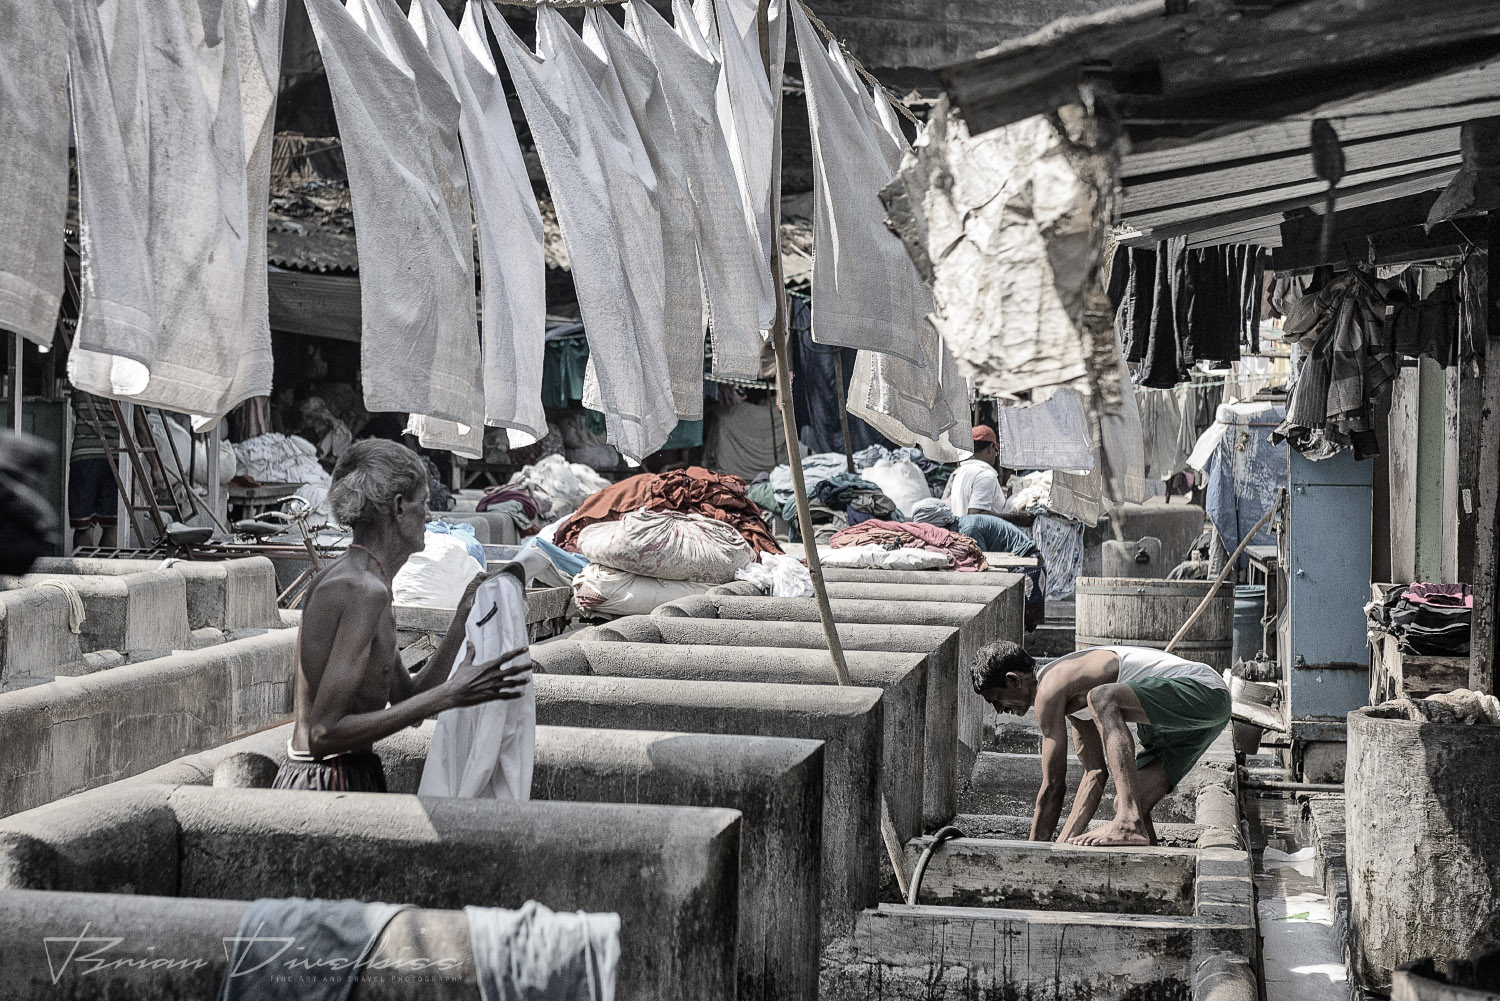 Row of outdoor laundry tubs beneath hanging clothes at Dhobi Ghat in Mumbai, India in black and white.